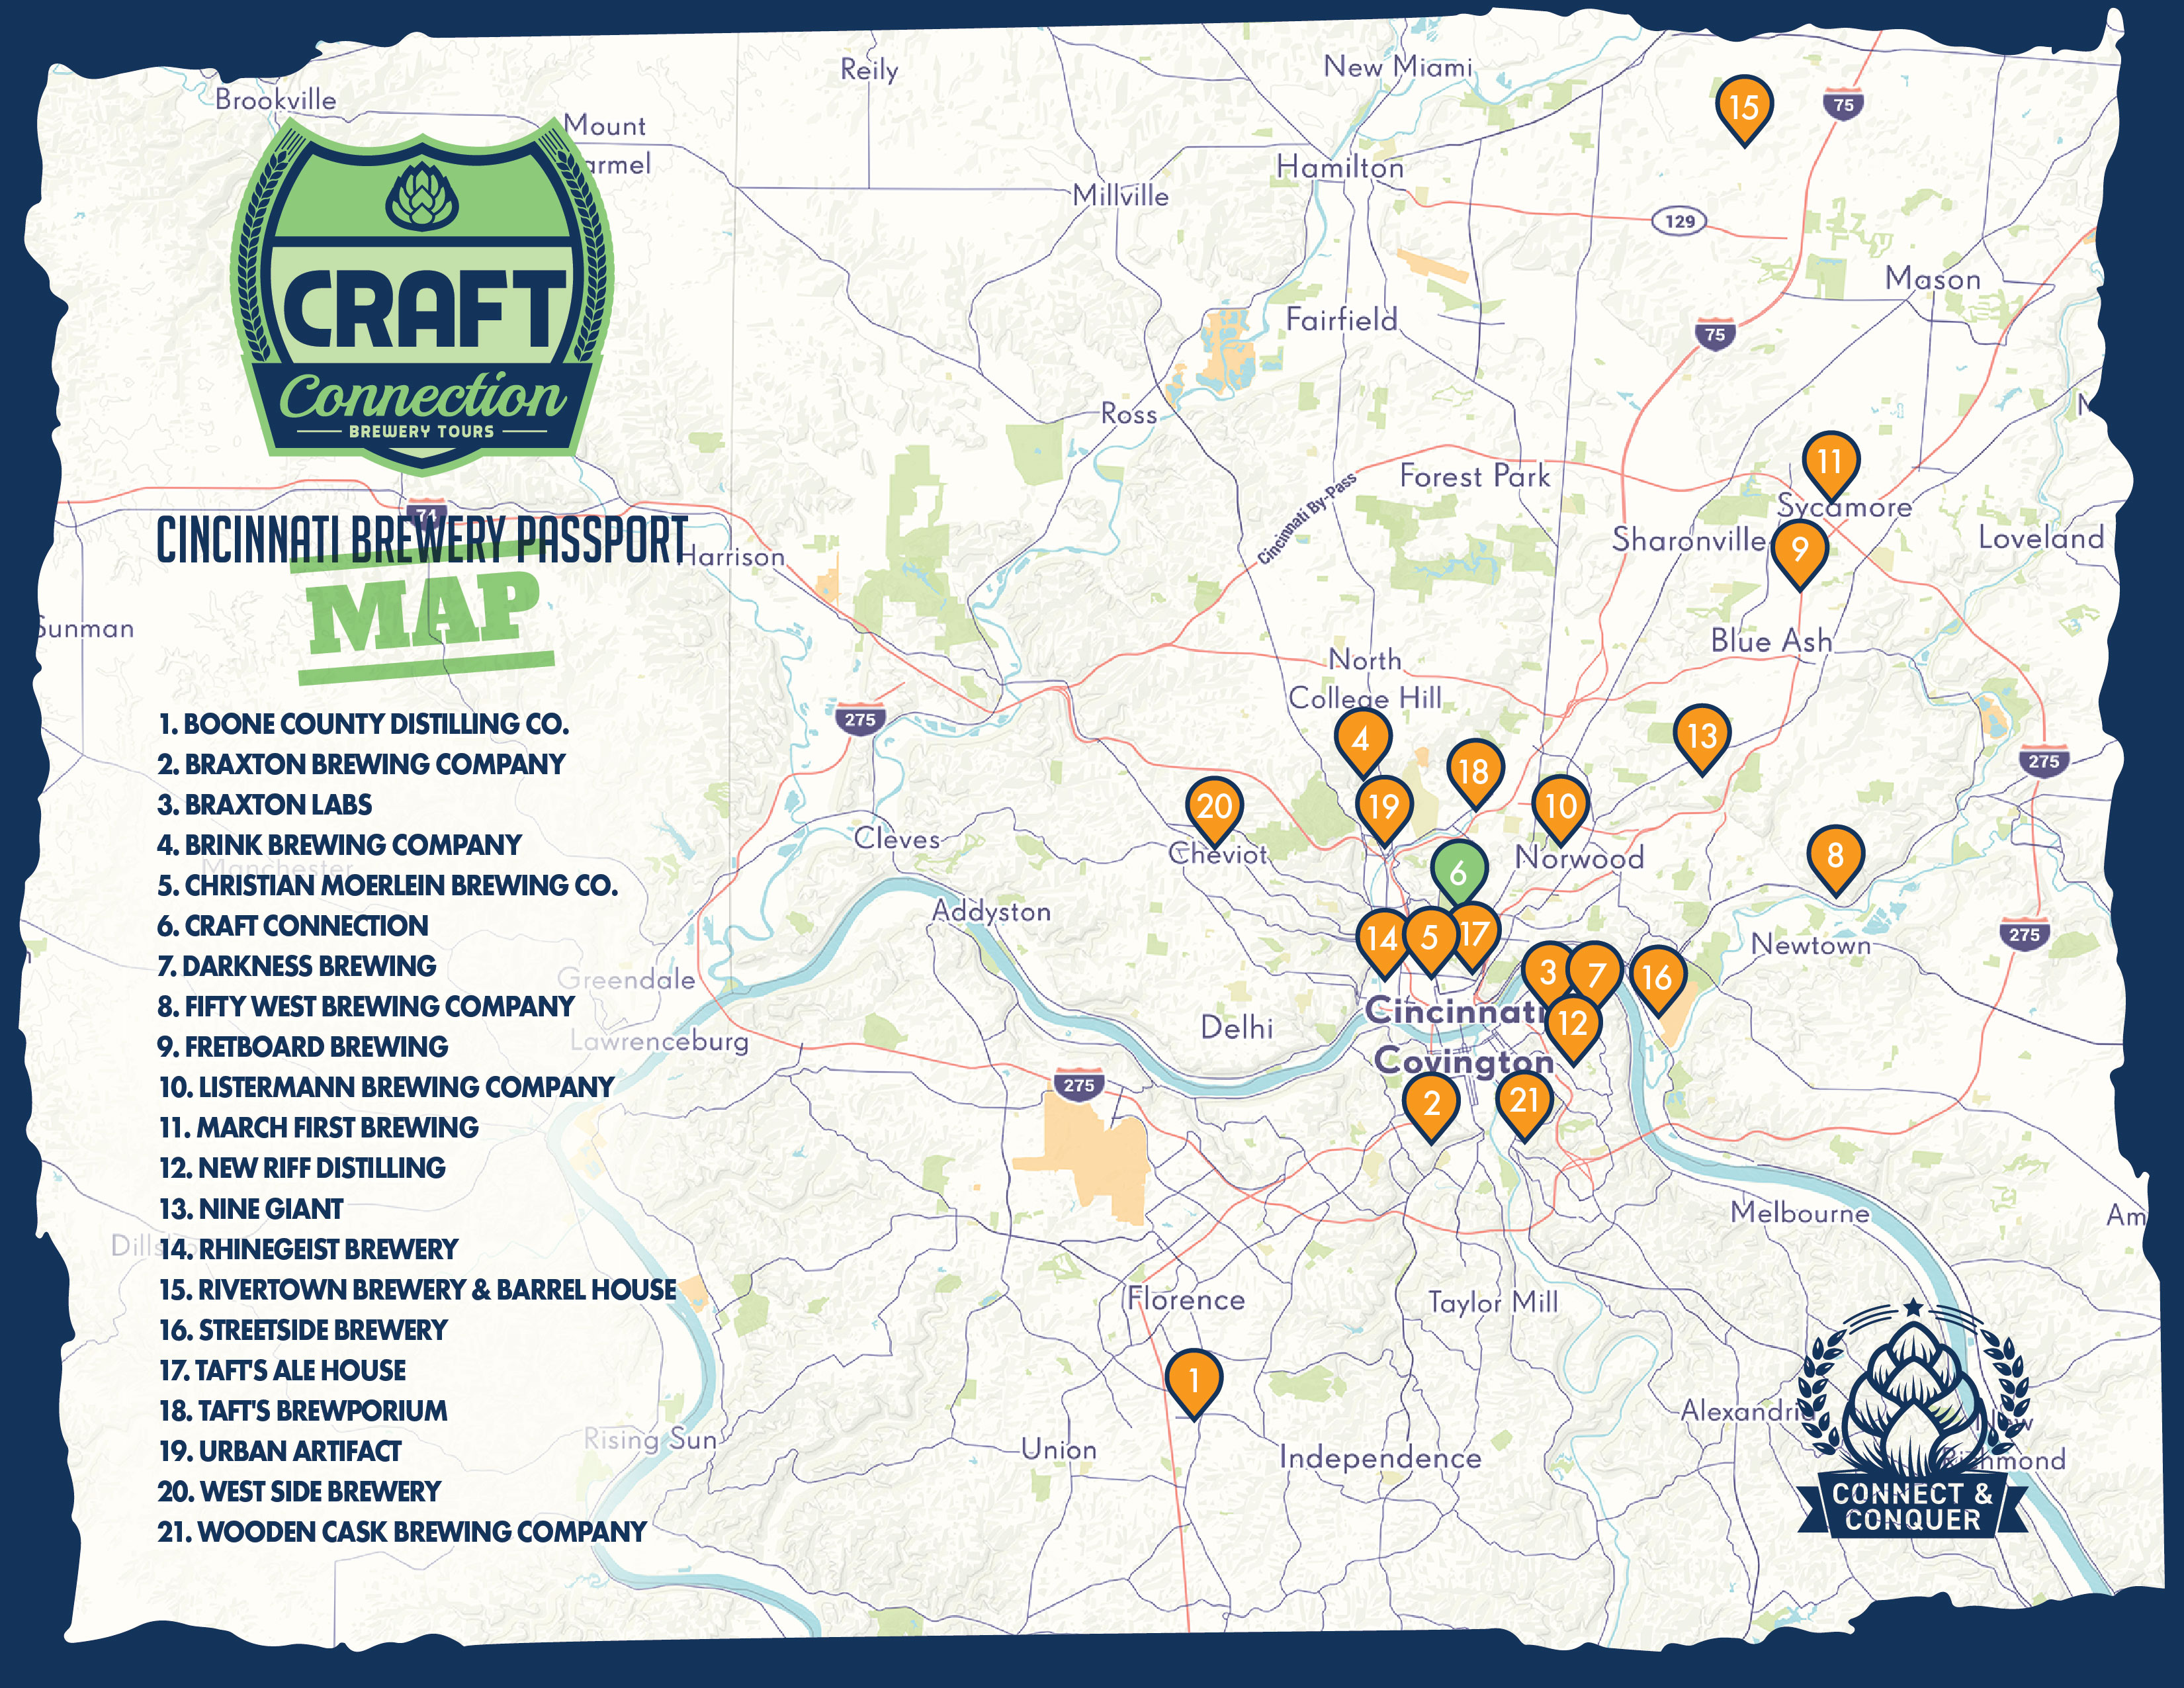 The Cincinnati Brewery Passport Craft Connection Brewery Tours